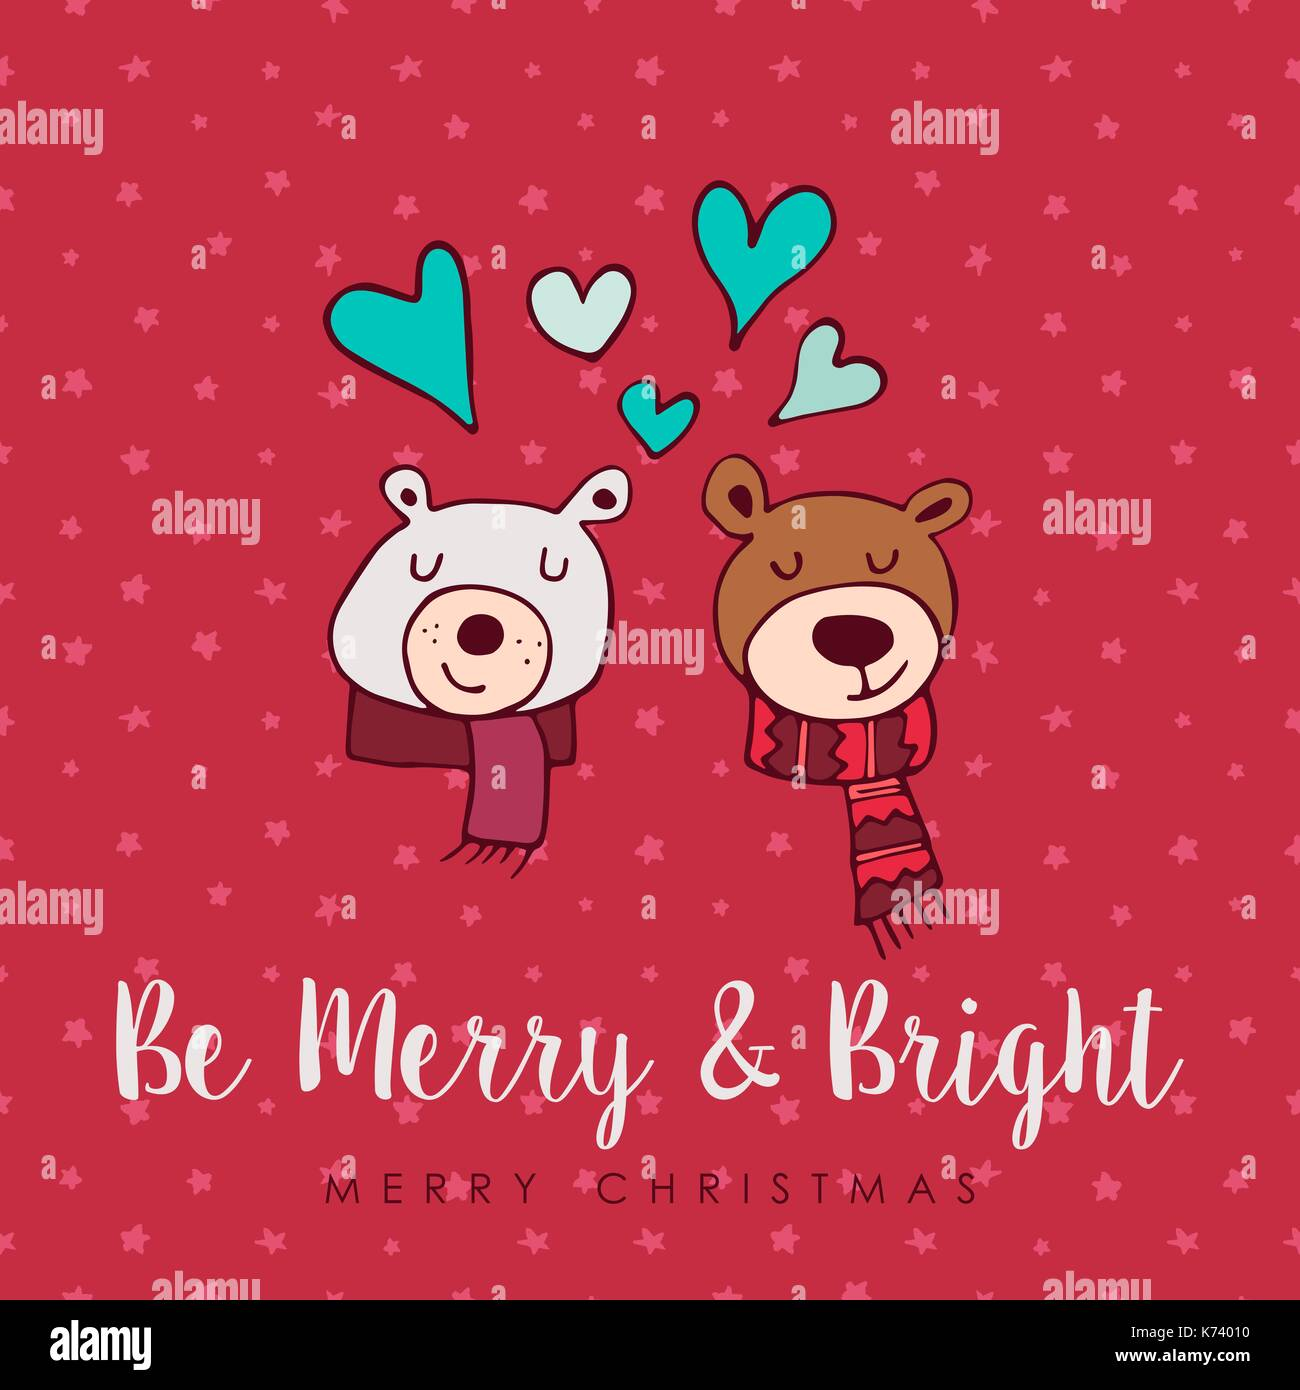 Merry Christmas Hand Drawn Bear Greeting Card Illustration Cute